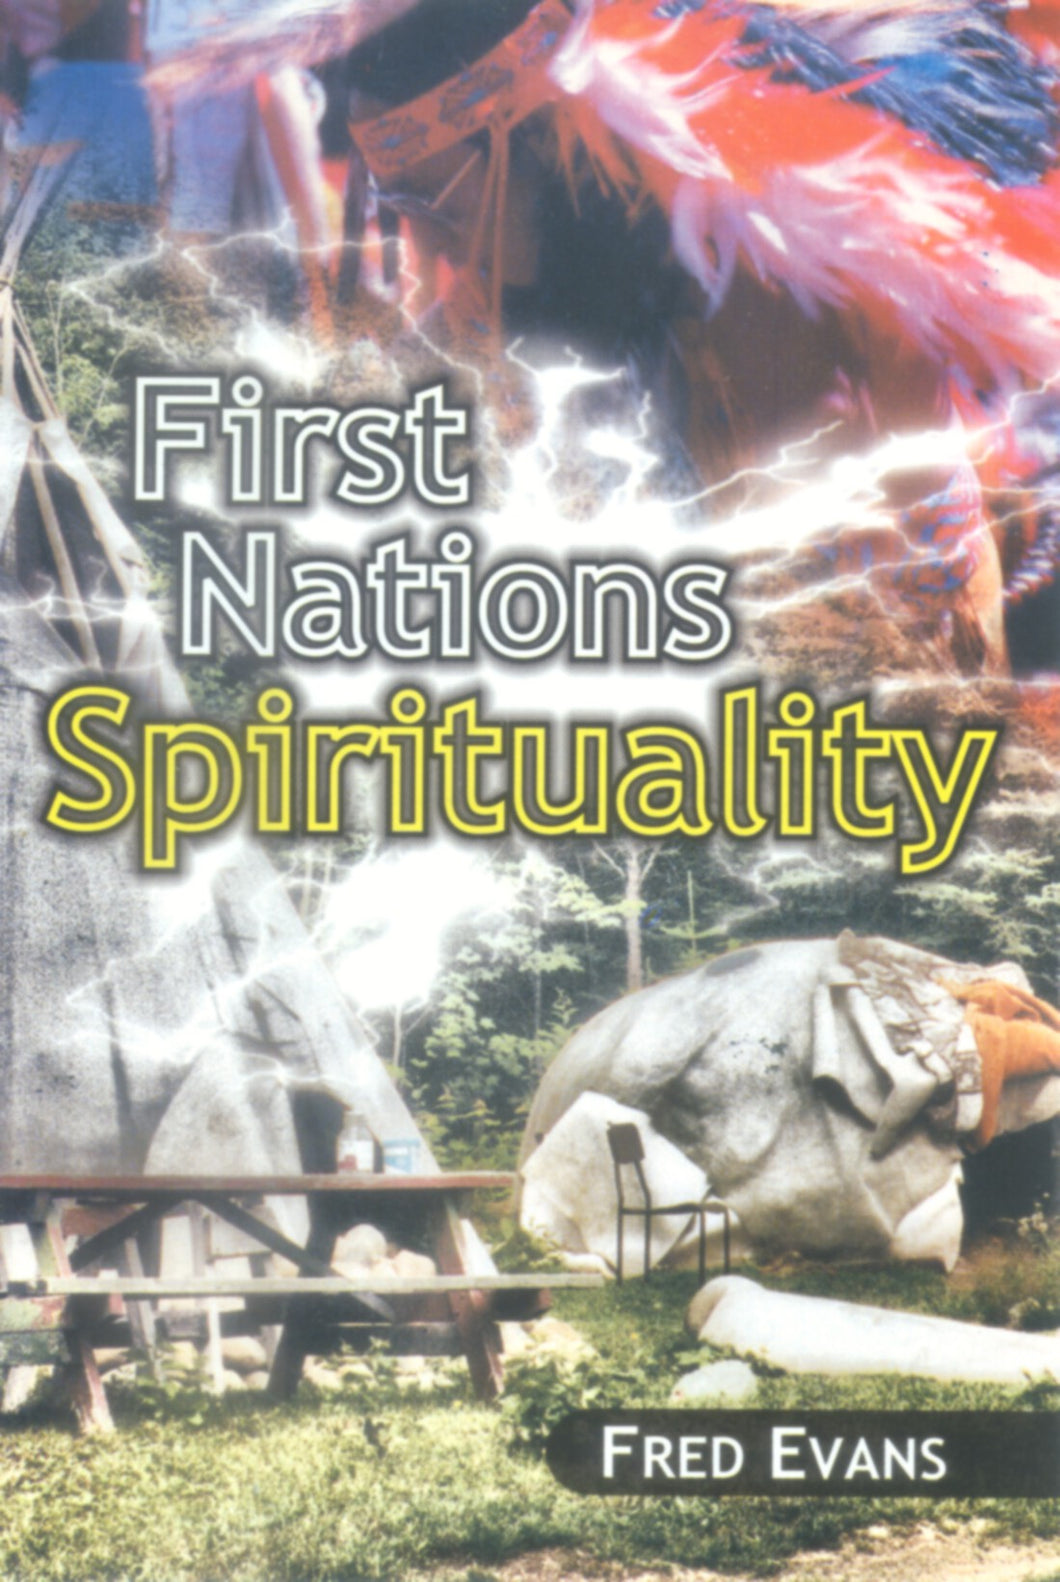 First Nations Spirituality